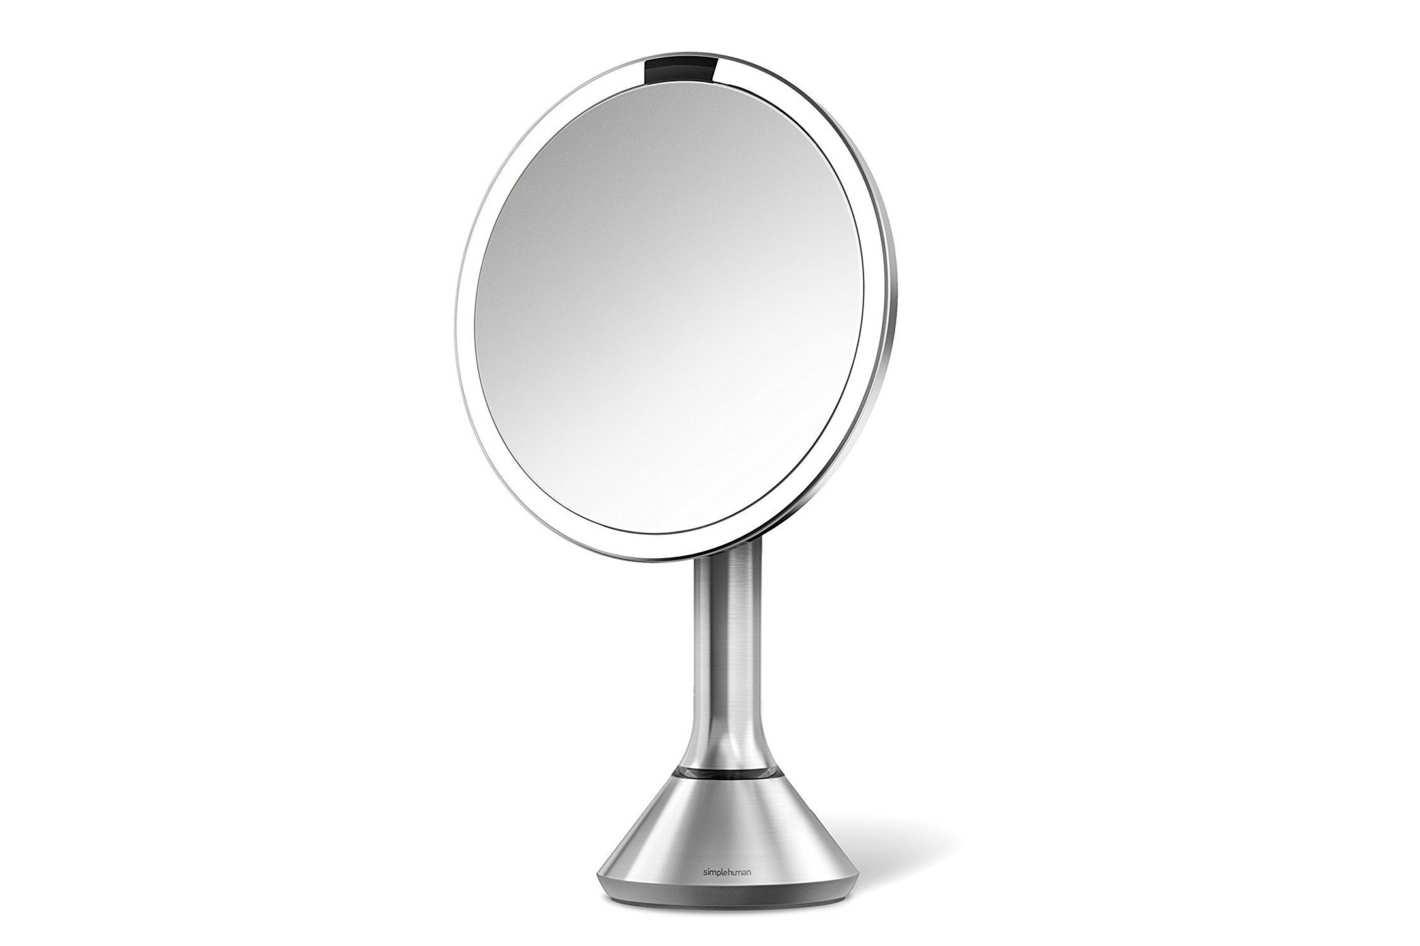 11 Best Vanity Makeup Mirrors Lights 2017: Lighted Mirrors Regarding Lit Makeup Mirrors (Image 1 of 20)